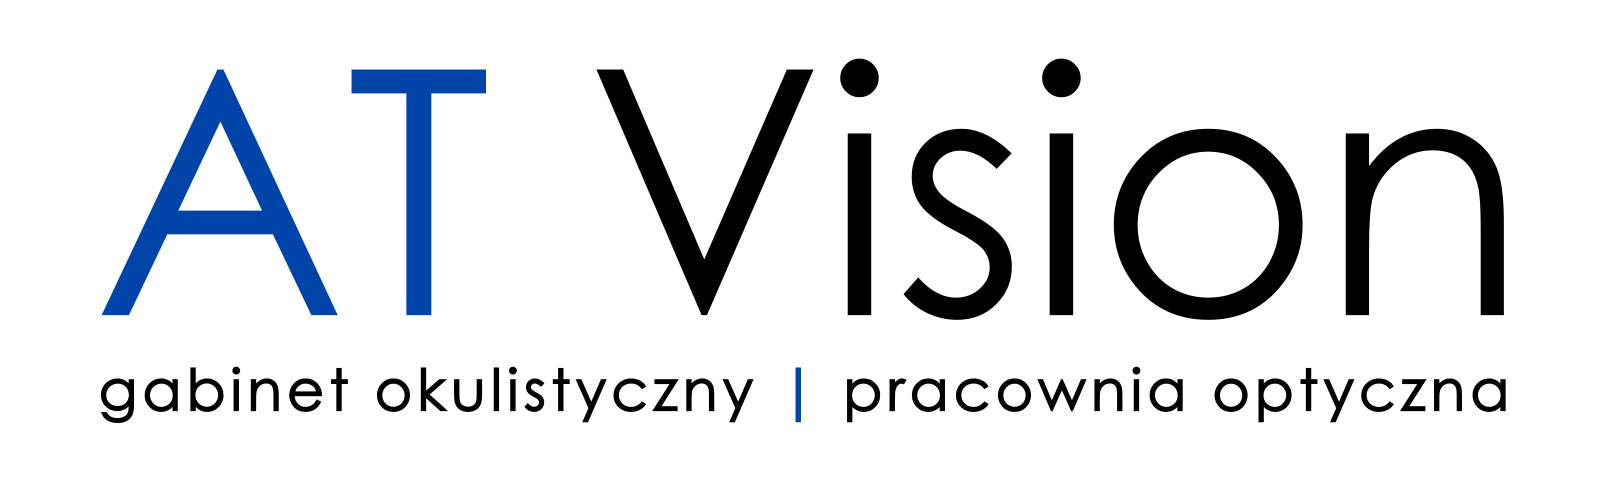 cropped-atvision-logo.png